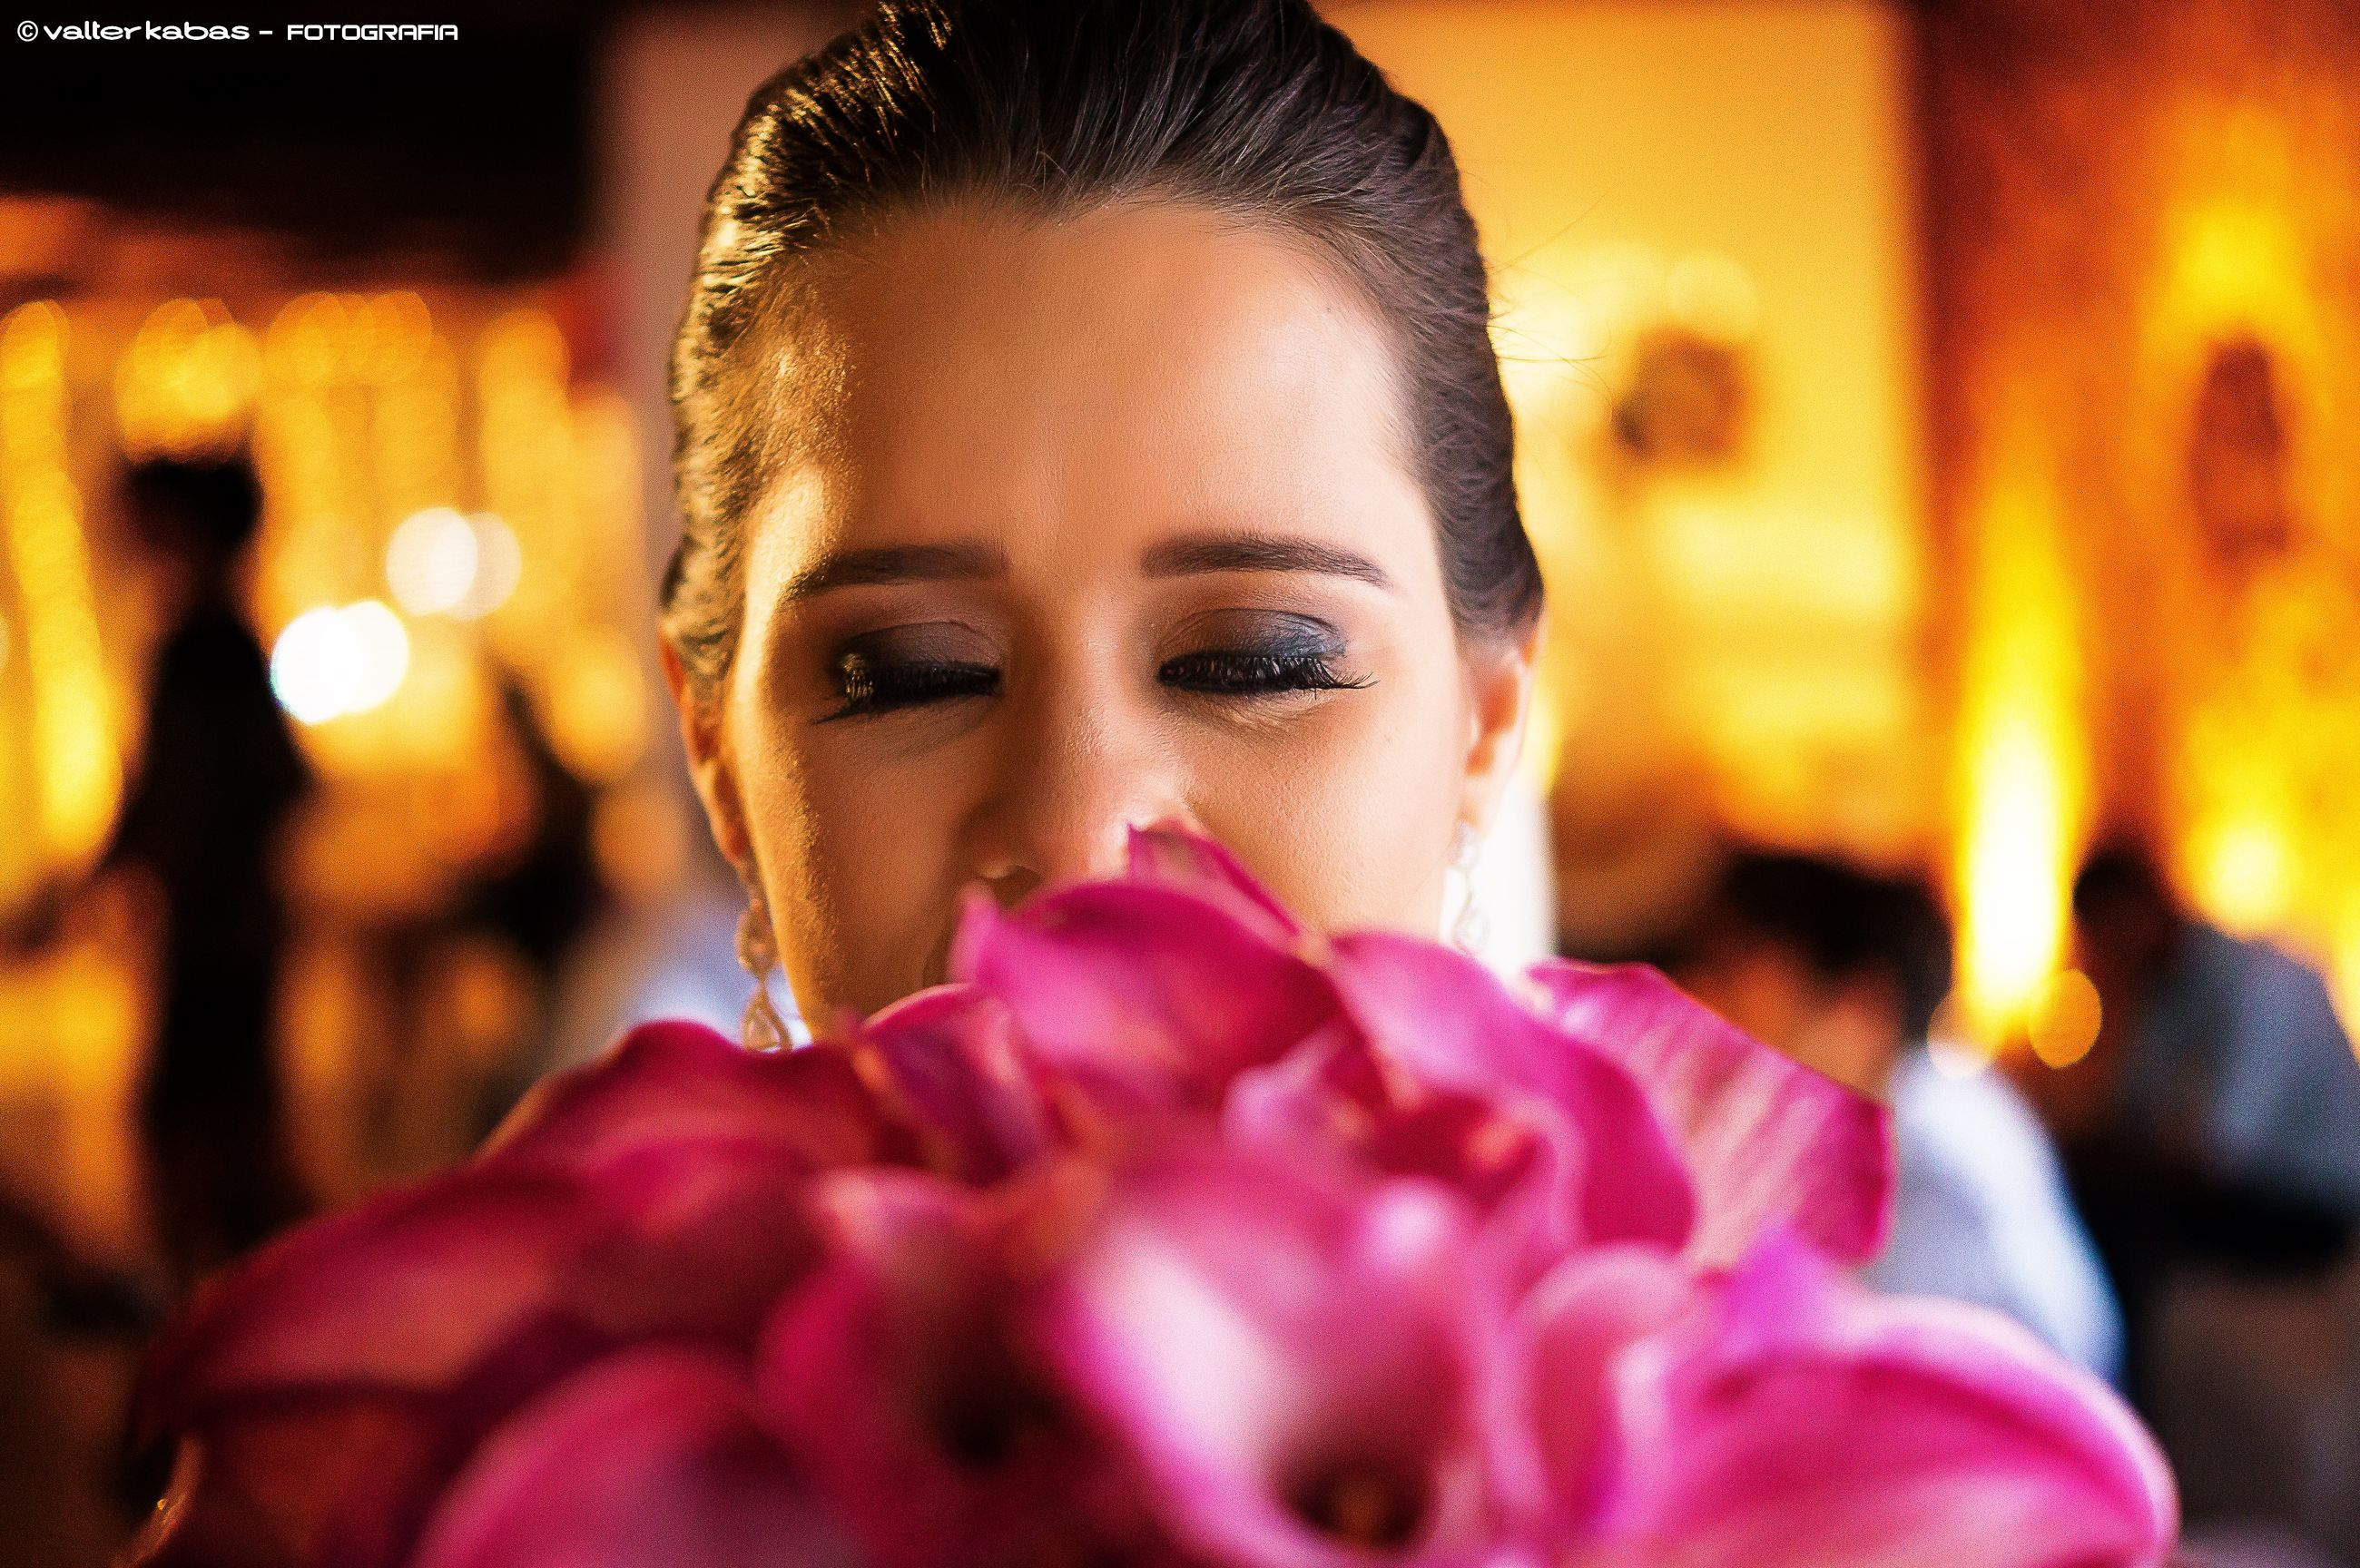 indoors, close-up, headshot, flower, focus on foreground, portrait, looking at camera, home interior, pink color, auto post production filter, front view, person, lifestyles, dog, red, selective focus, freshness, pets